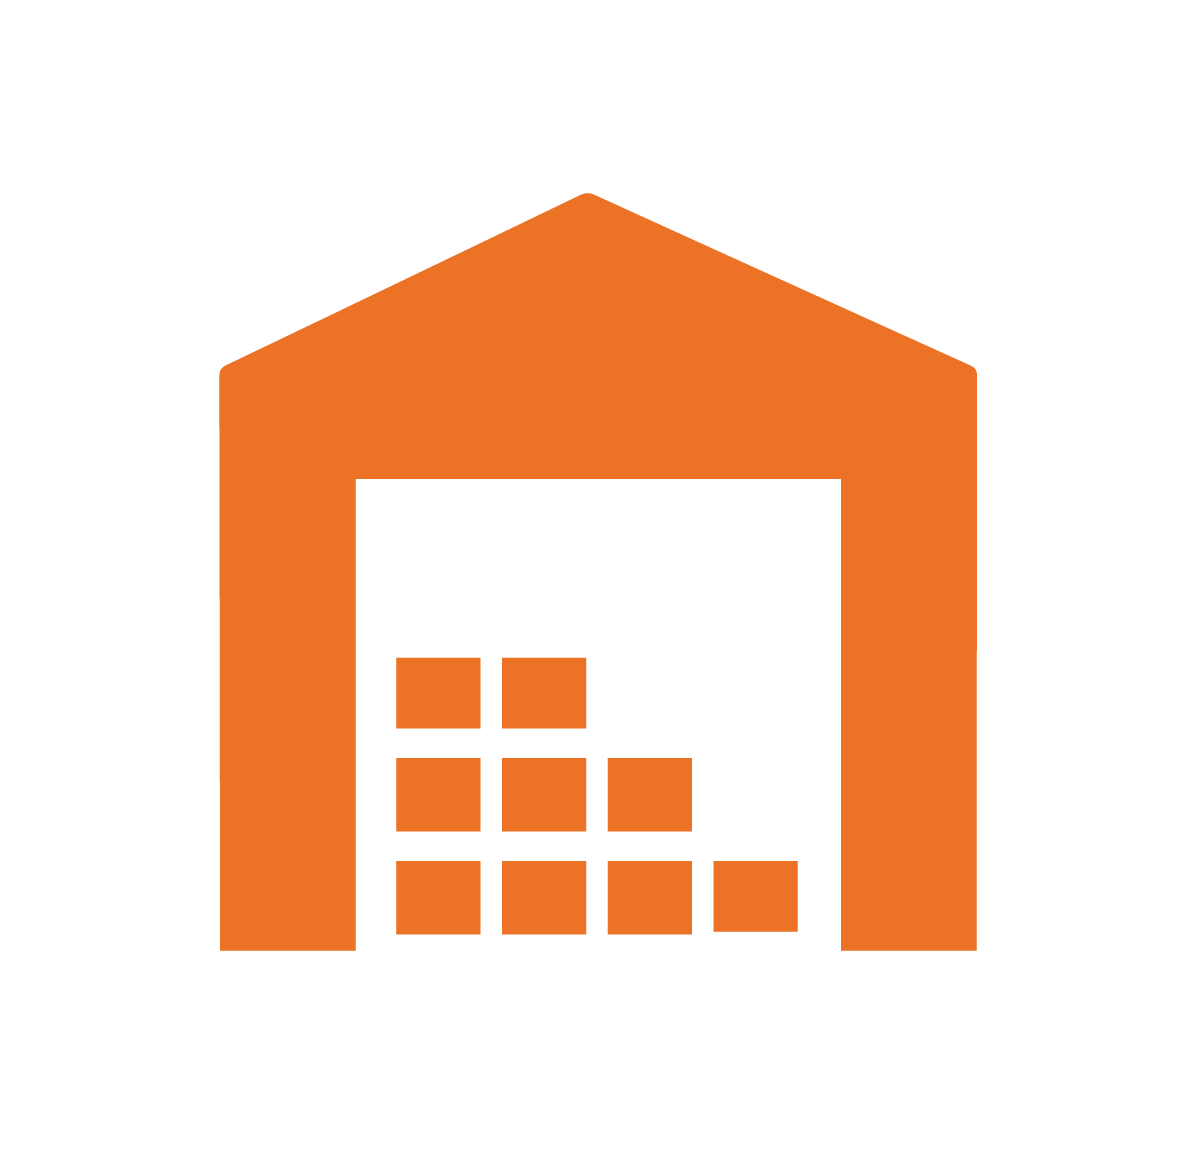 Free Vector Warehouse Inventory image #33854